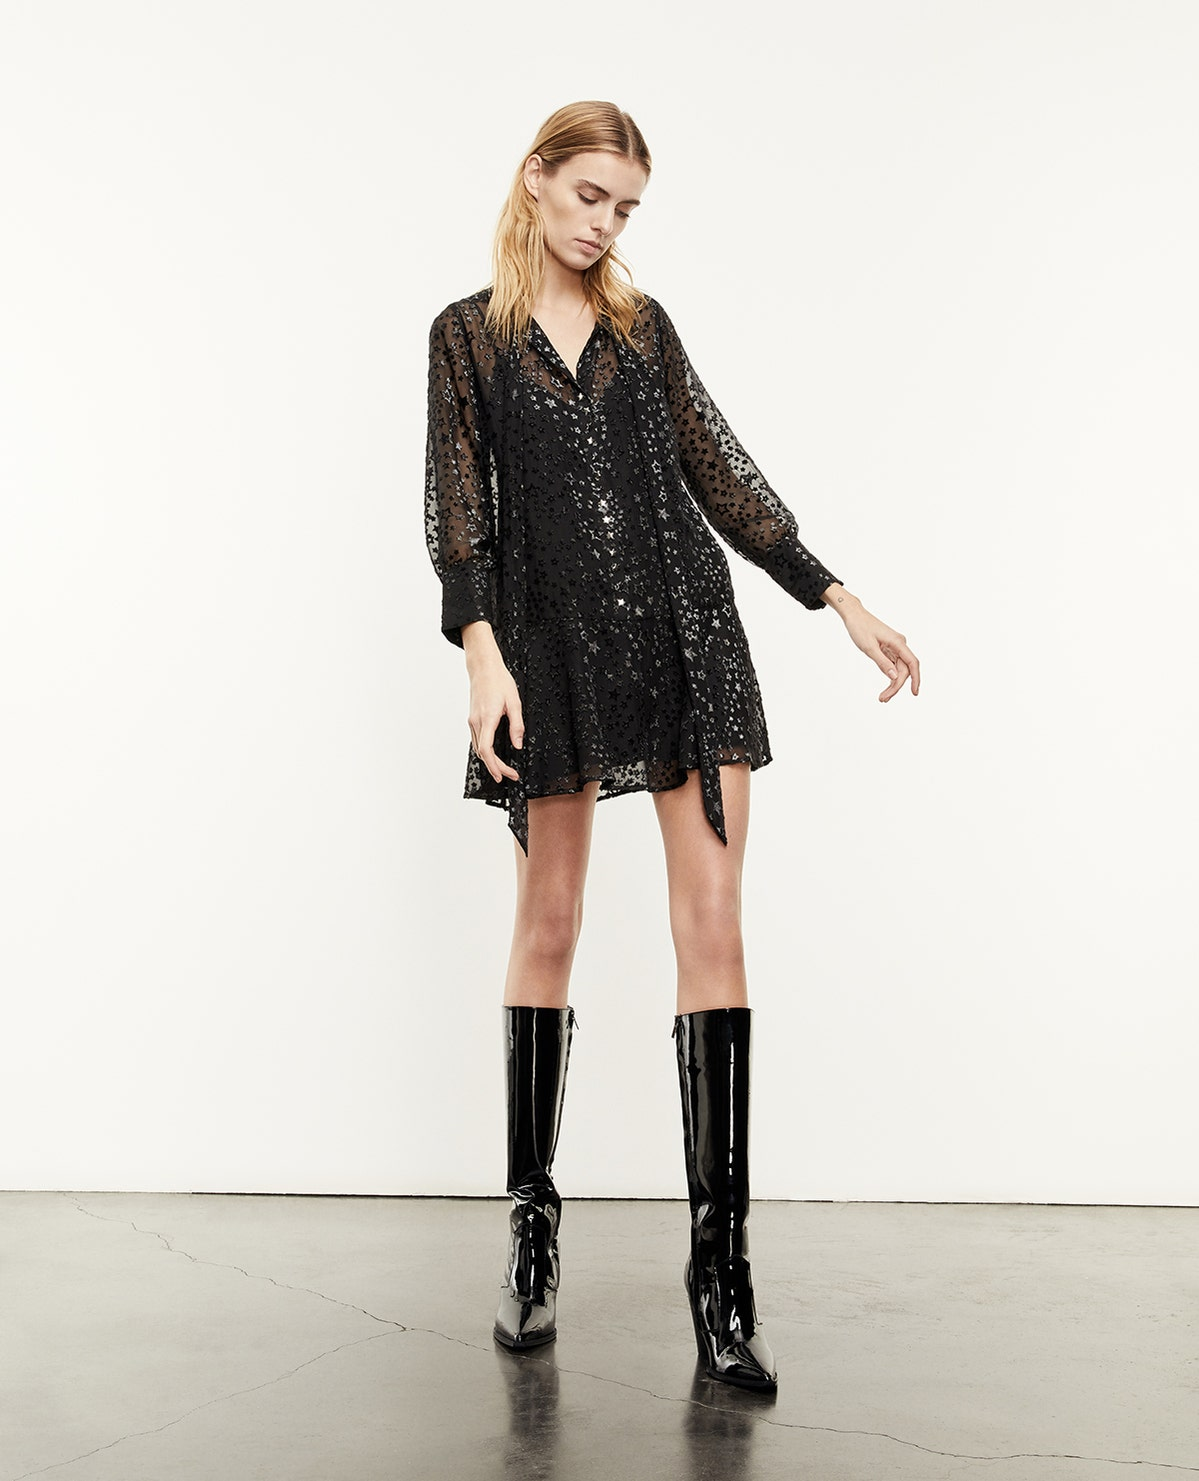 The Kooples: Extra 25% Off Labor Day Sale